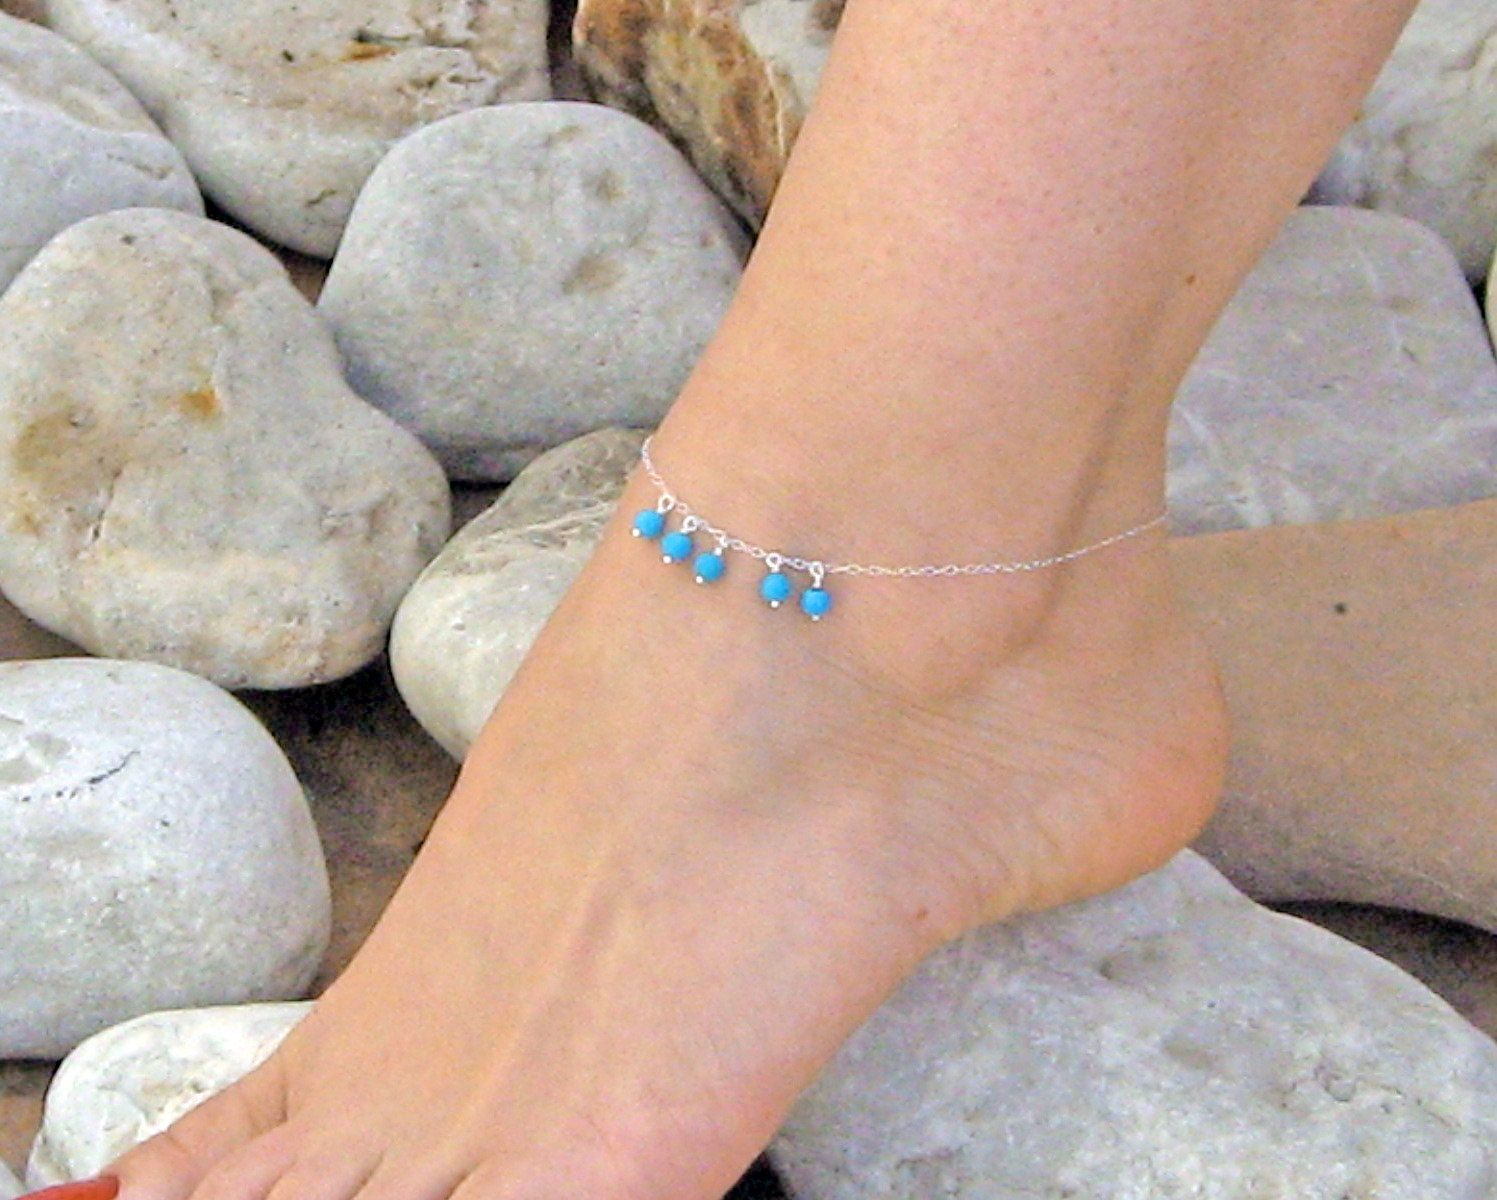 ankle sybaris sideways olizz women for and anklet gold luck bracelet bracelets turquoise wishbone good